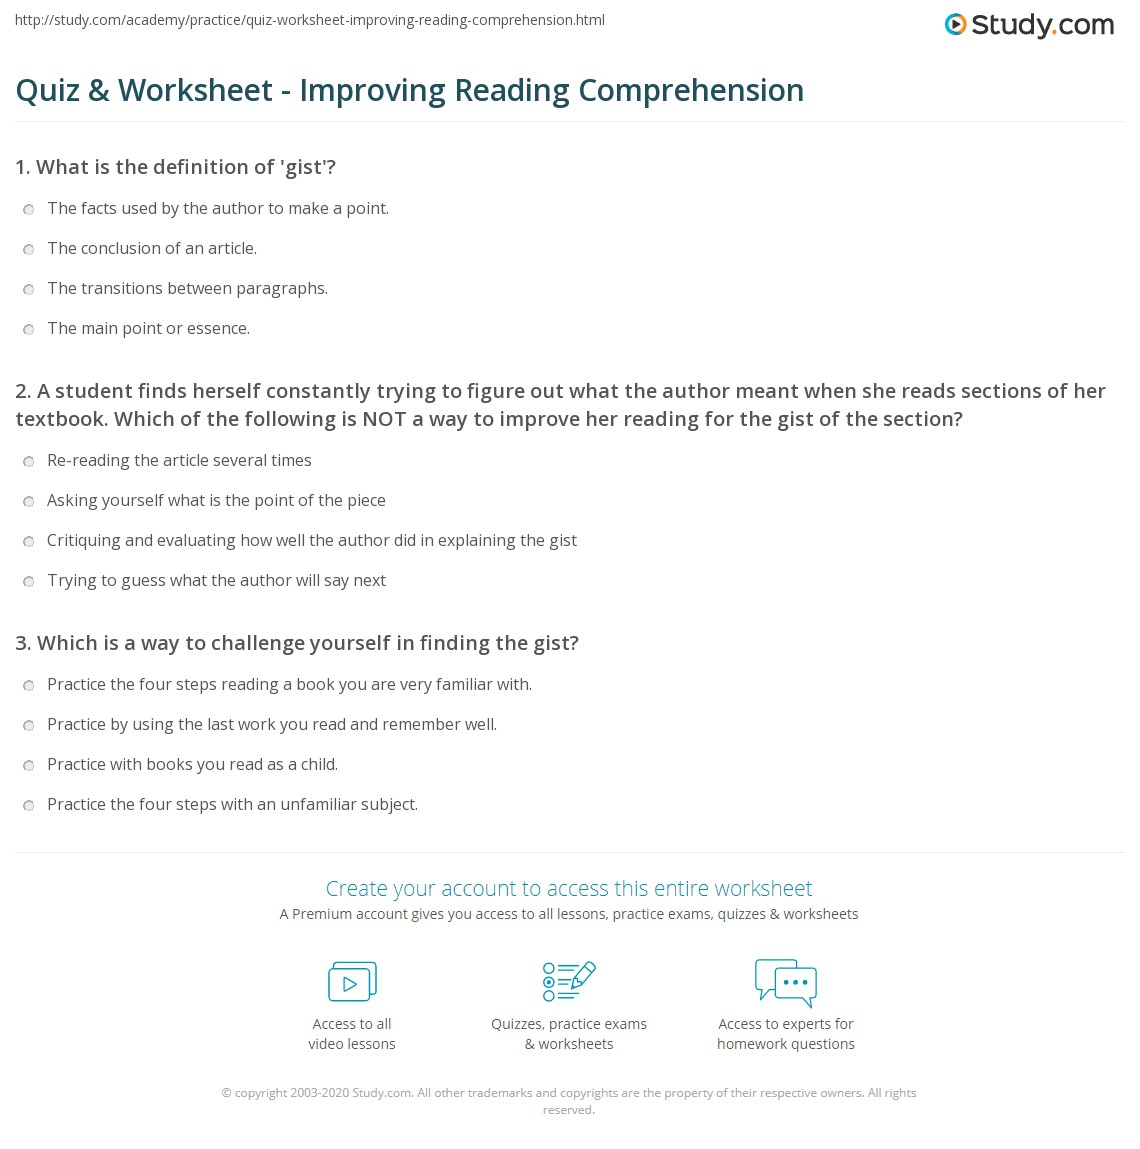 quiz worksheet improving reading comprehension com 1 a student finds herself constantly trying to figure out what the author meant when she reads sections of her textbook which of the following is not a